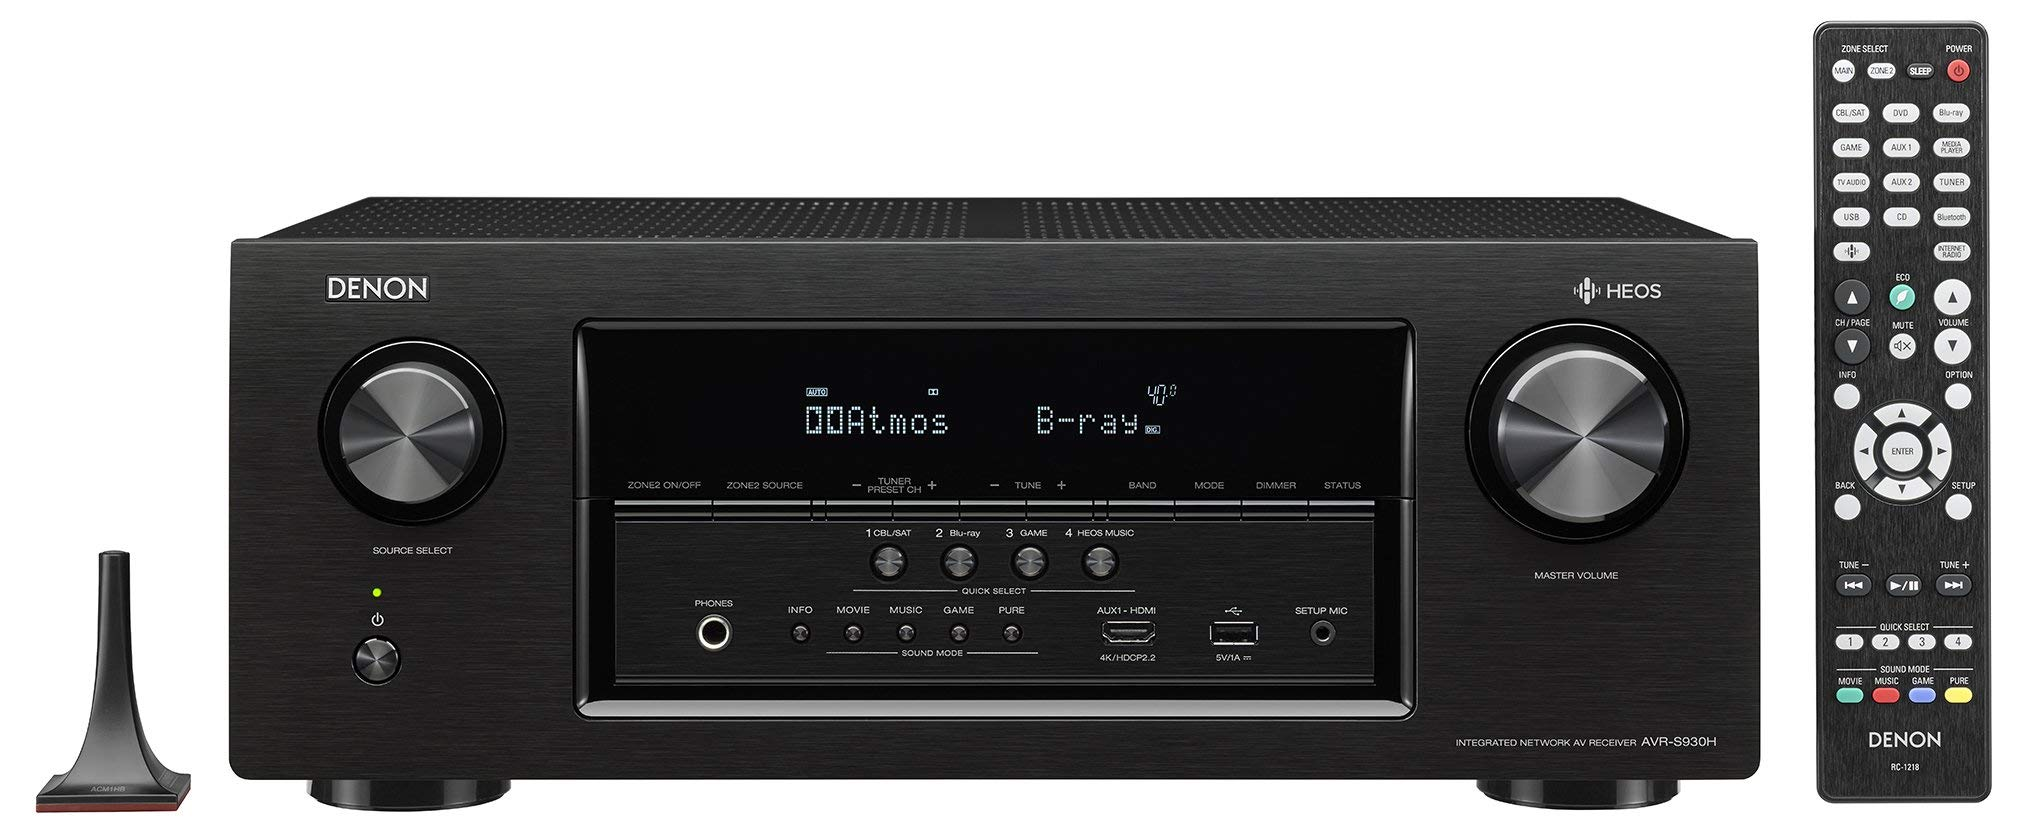 Denon AVRS930H 7.2 Channel AV Receiver with Built-in HEOS wireless technology, Works with Alexa (Renewed)